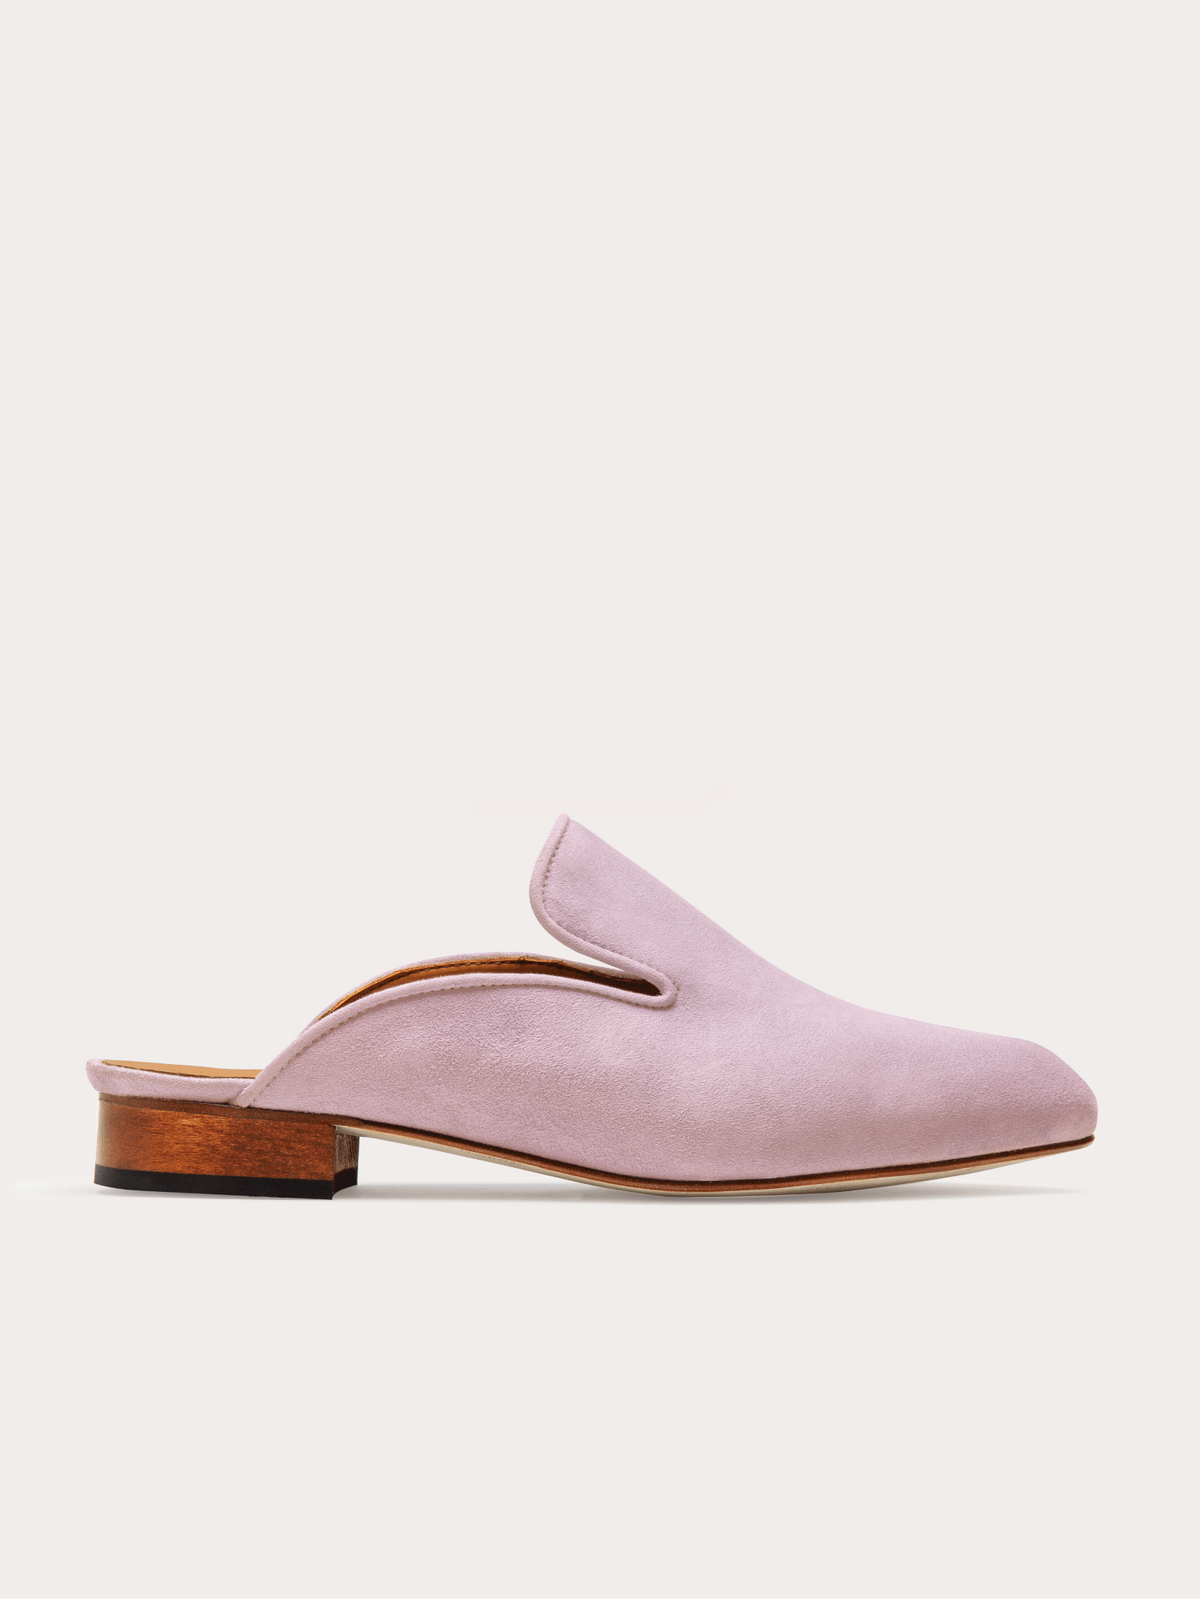 The Tilda Slide in Lilac